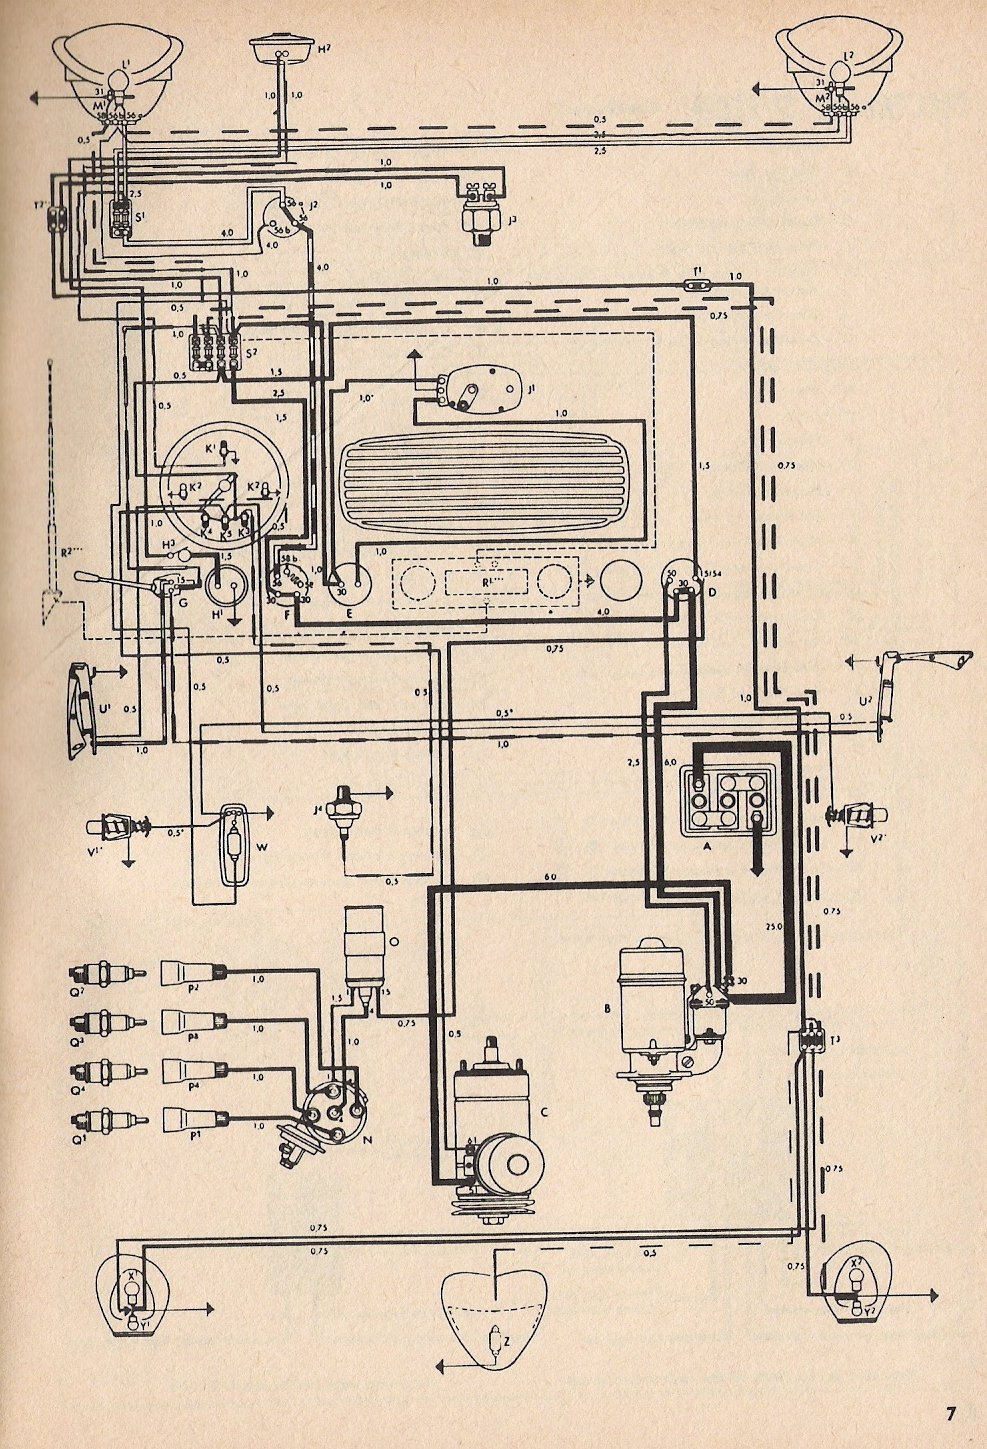 1971 volkswagen wiring diagram trusted wiring diagrams u2022 rh sivamuni com